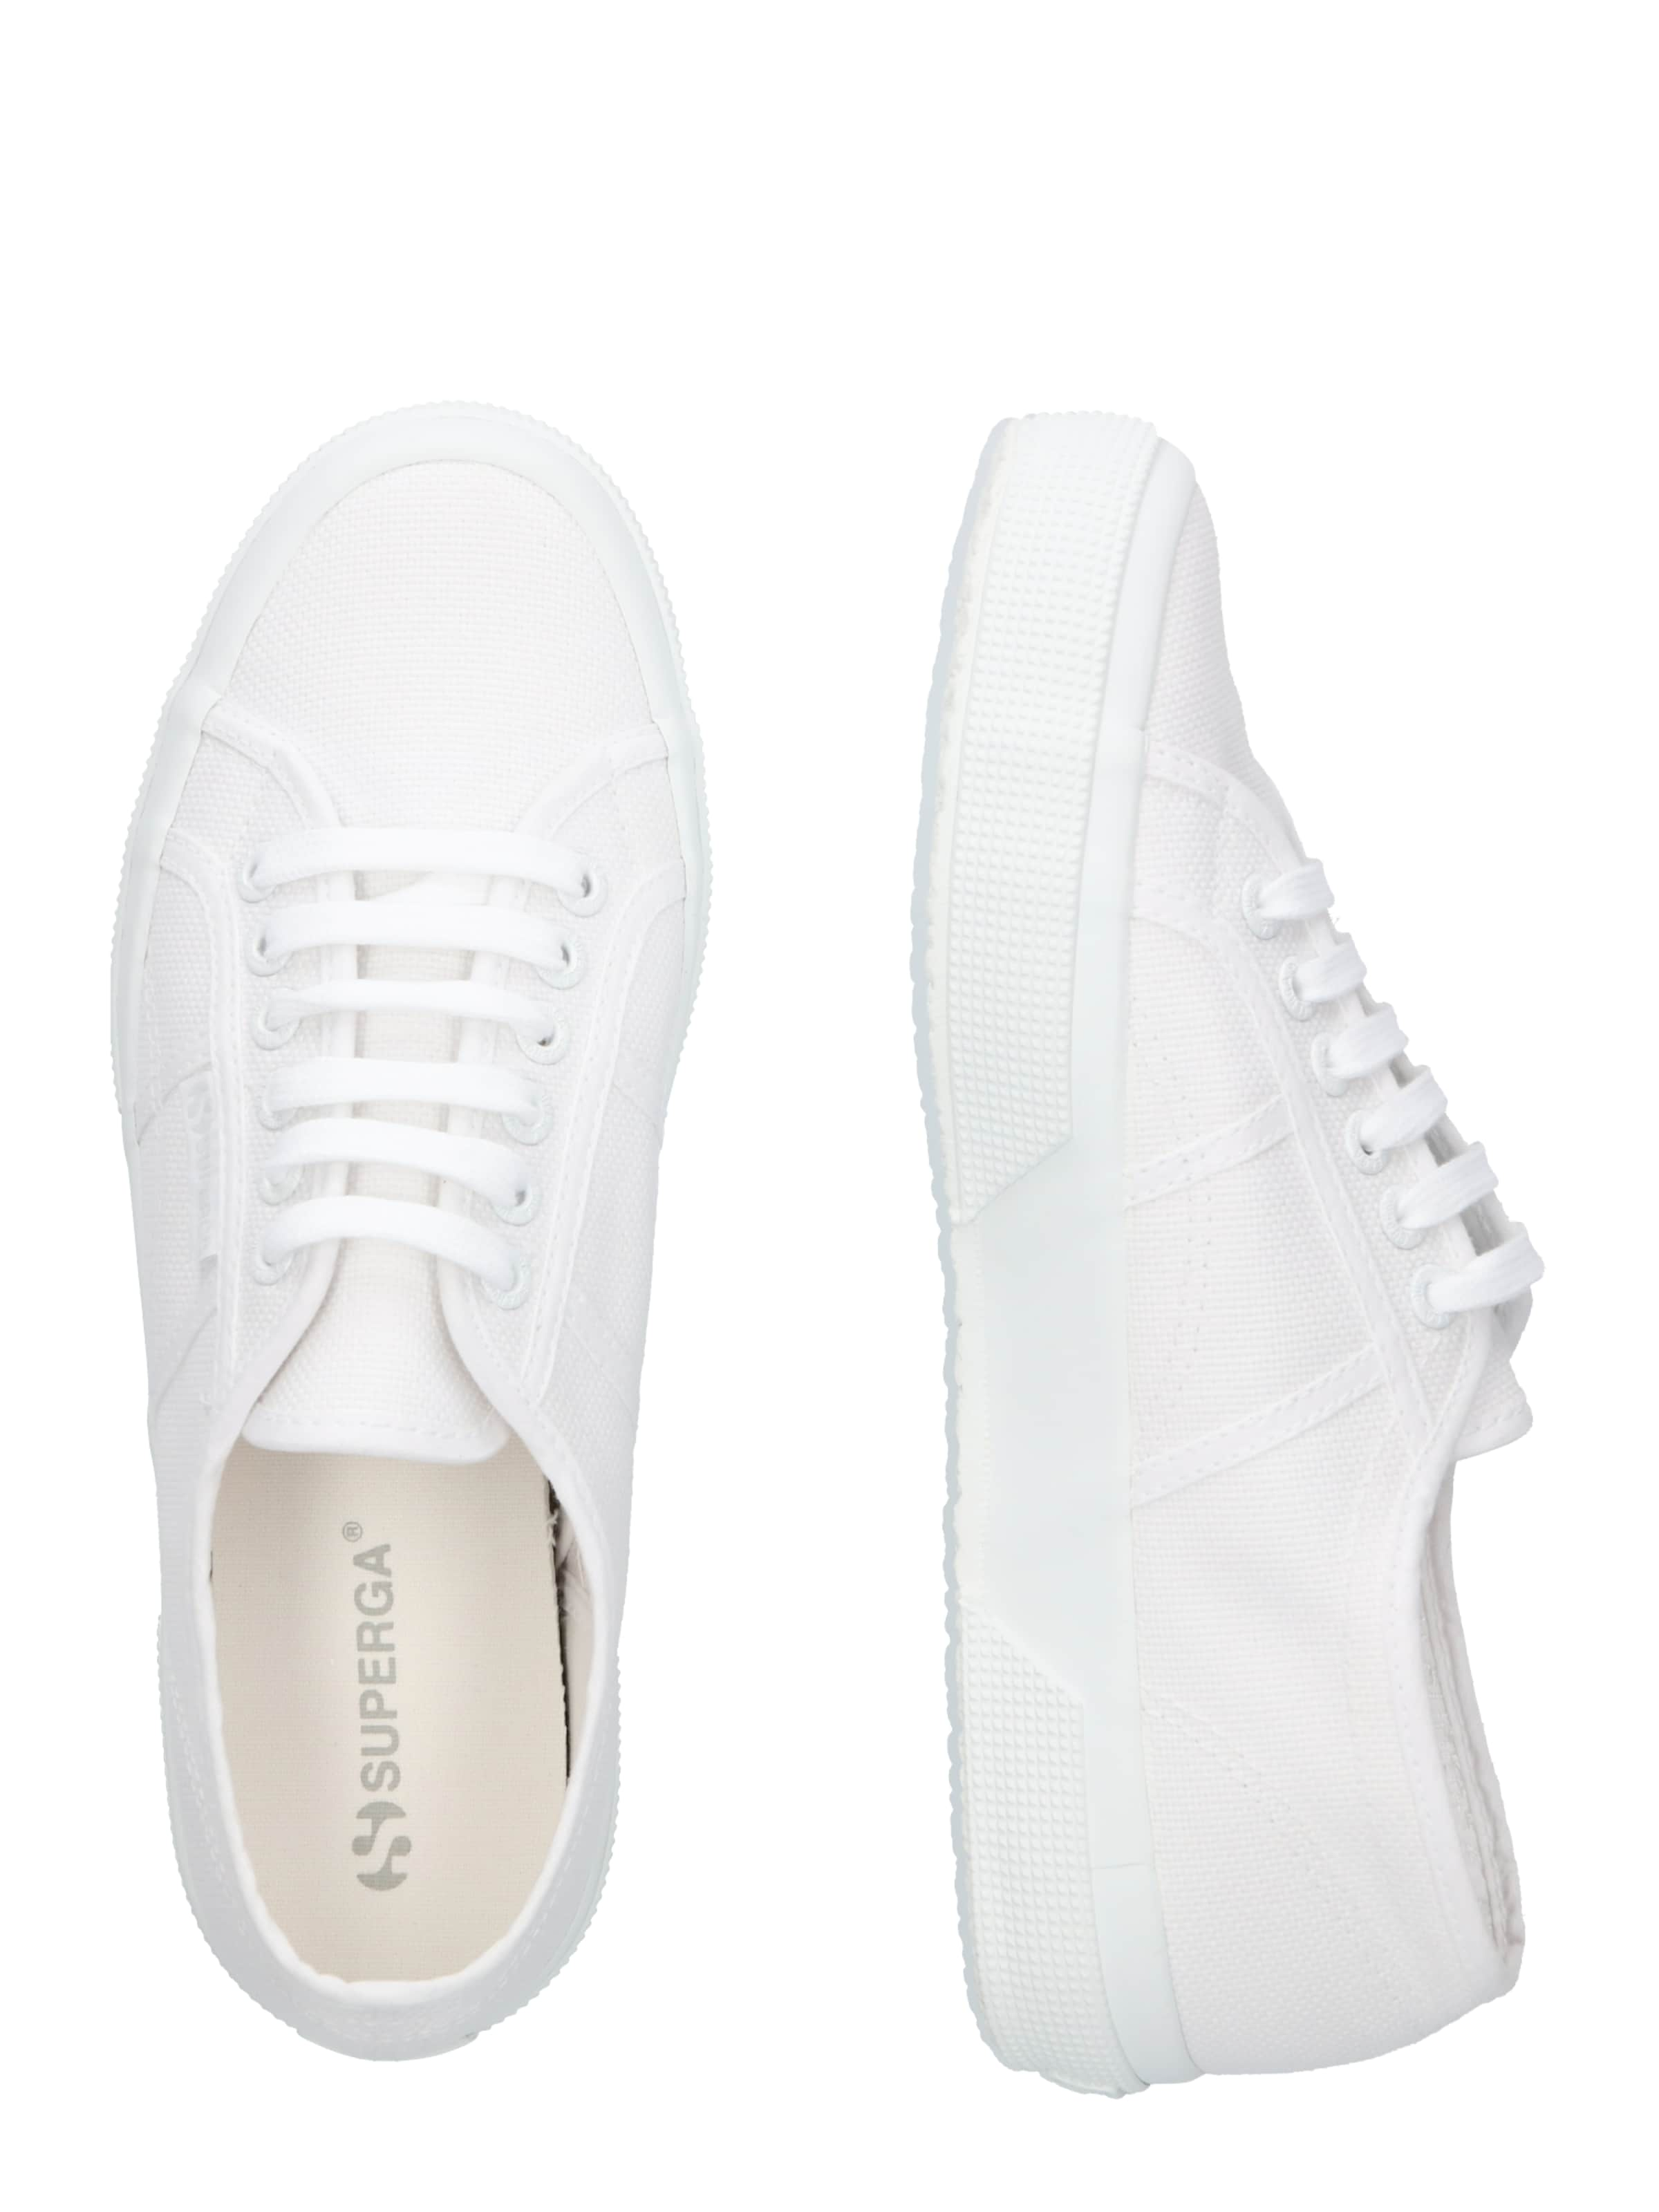 En Superga Baskets Basses Superga Blanc Basses Baskets Blanc En 5ASc3R4Ljq